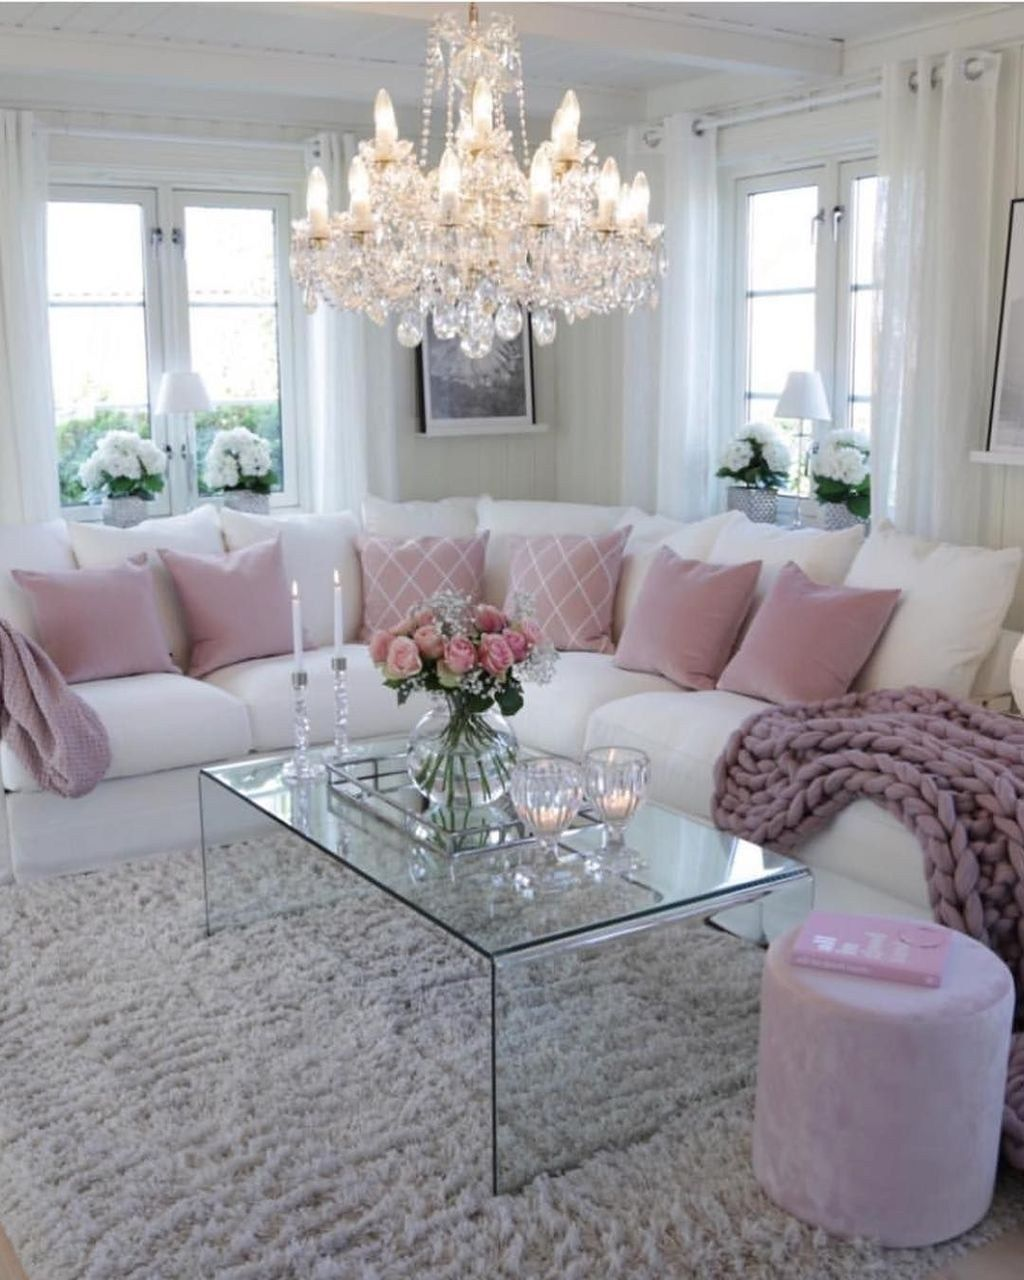 Romantic Style Living Rooms: 39 Beautiful Romantic Living Room Decor Ideas In 2020